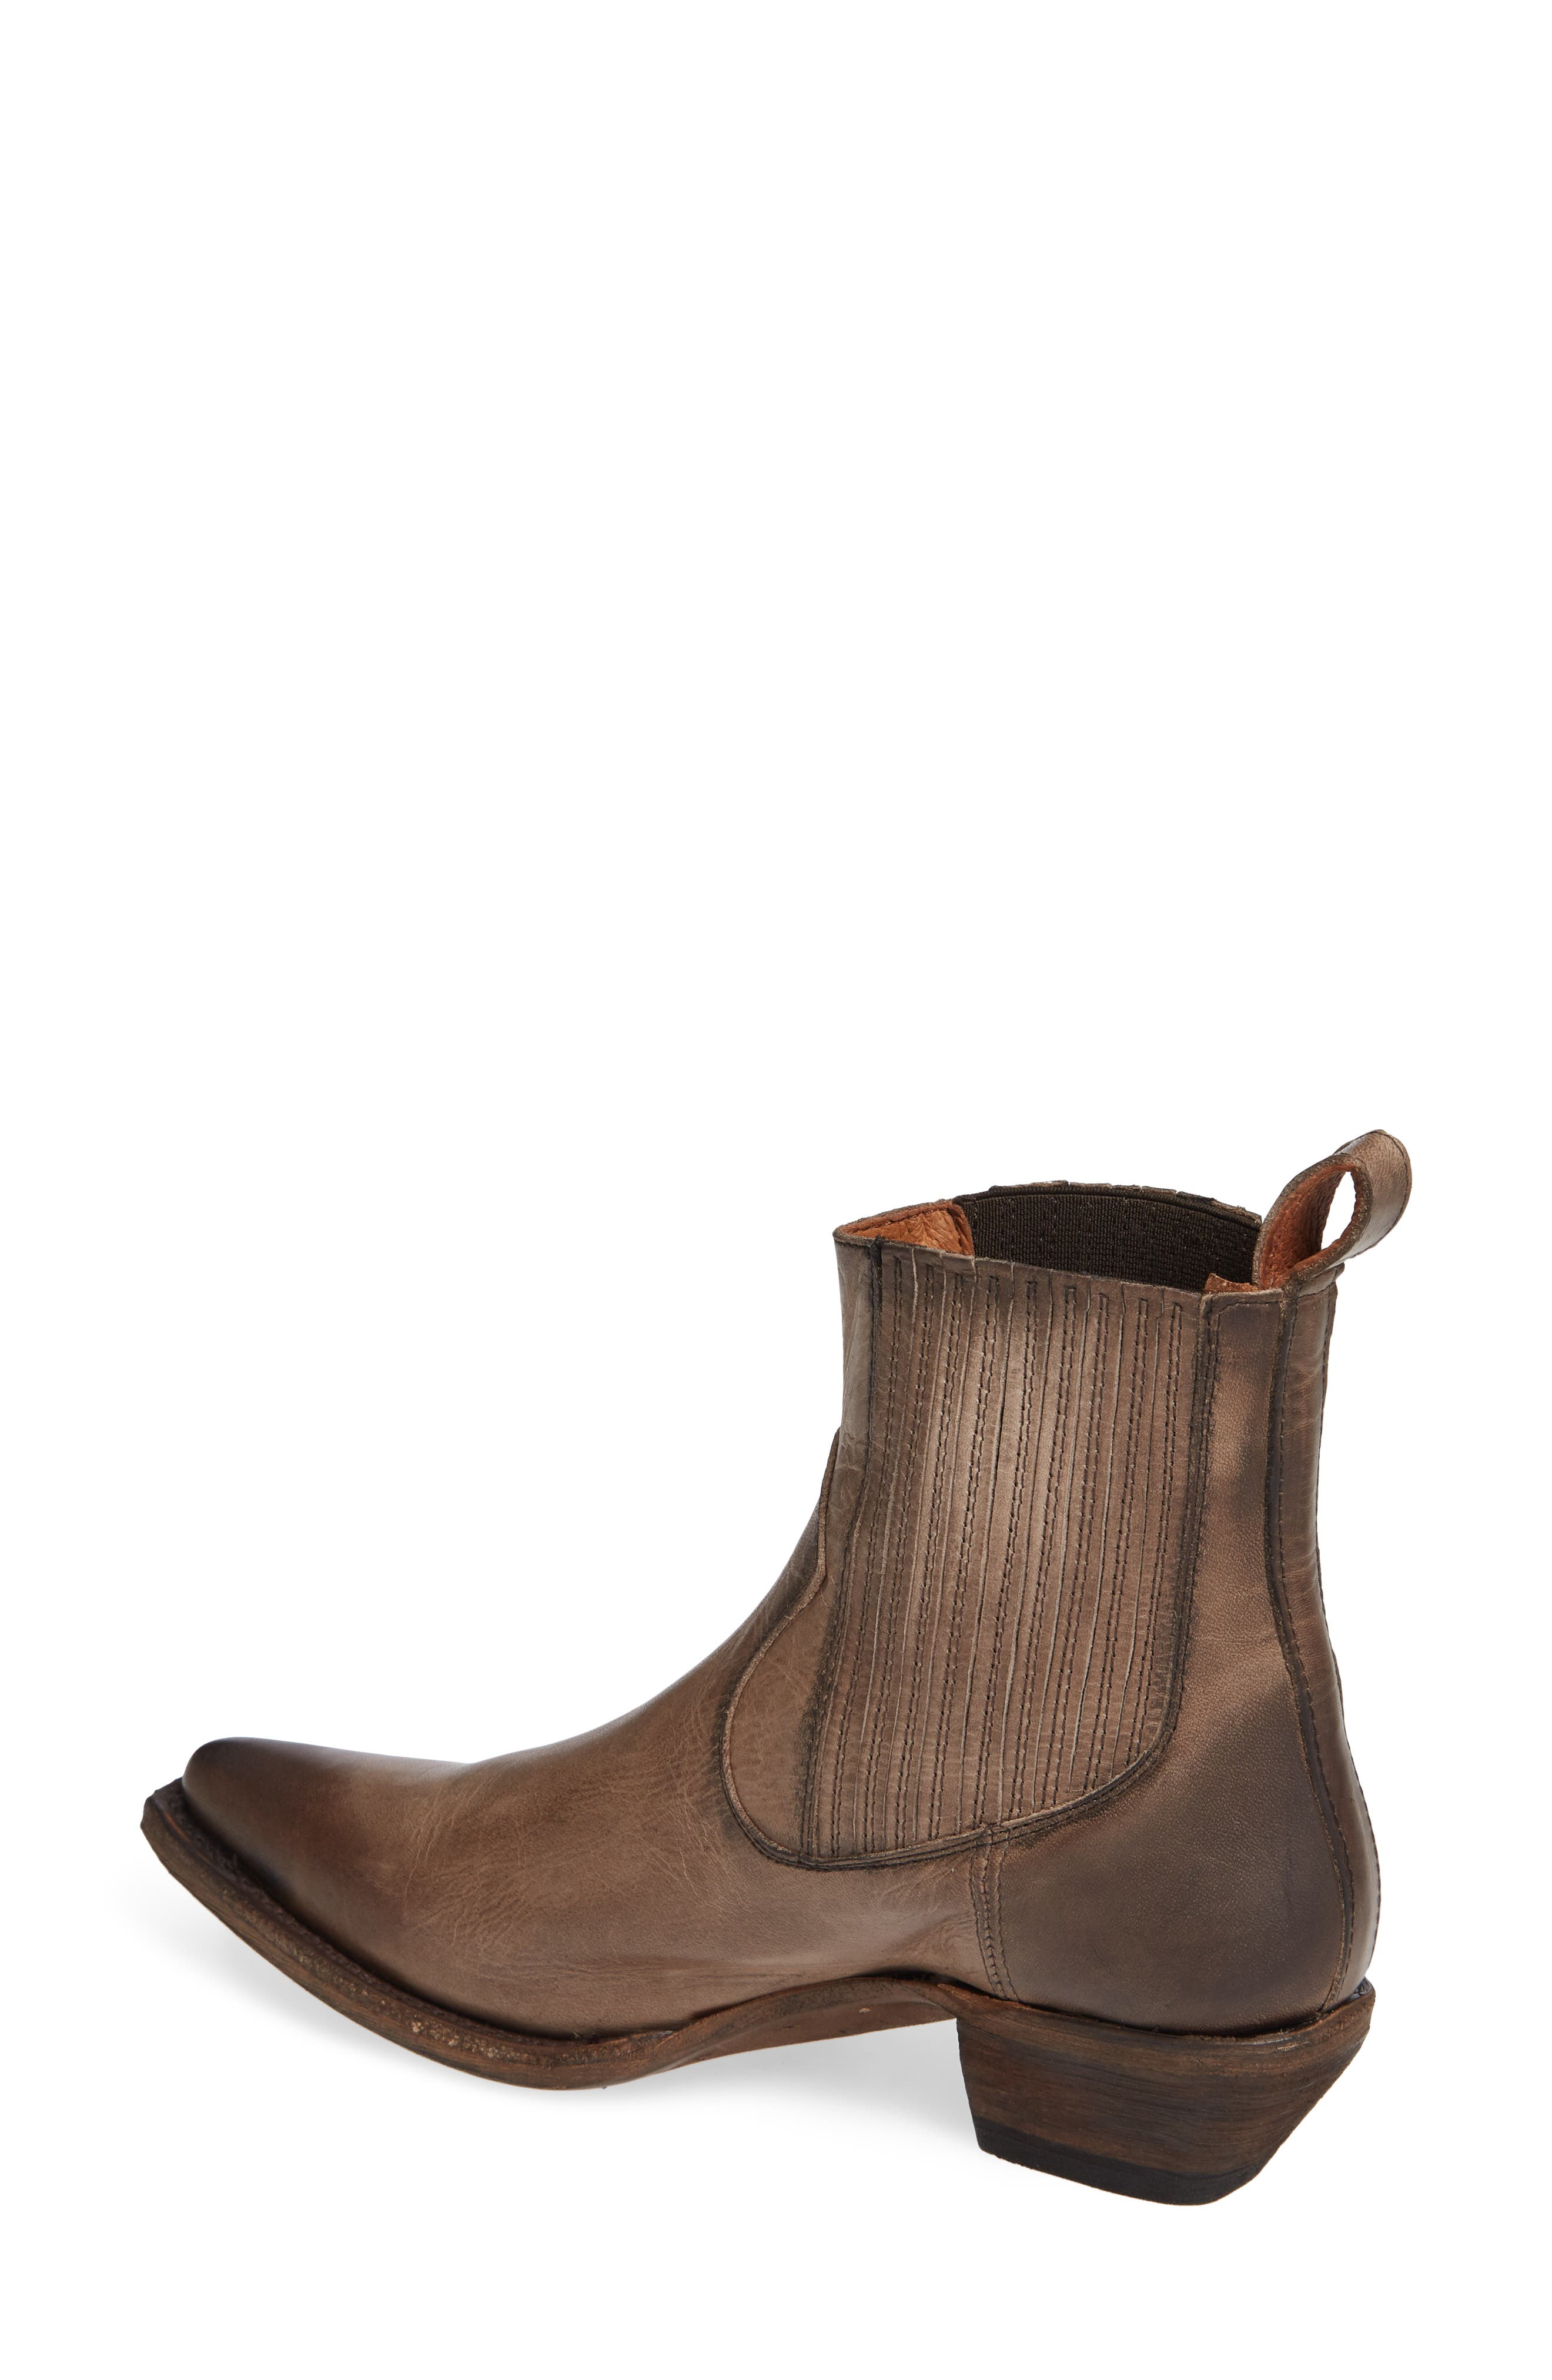 FRYE, Sacha Western Bootie, Alternate thumbnail 2, color, STONE LEATHER